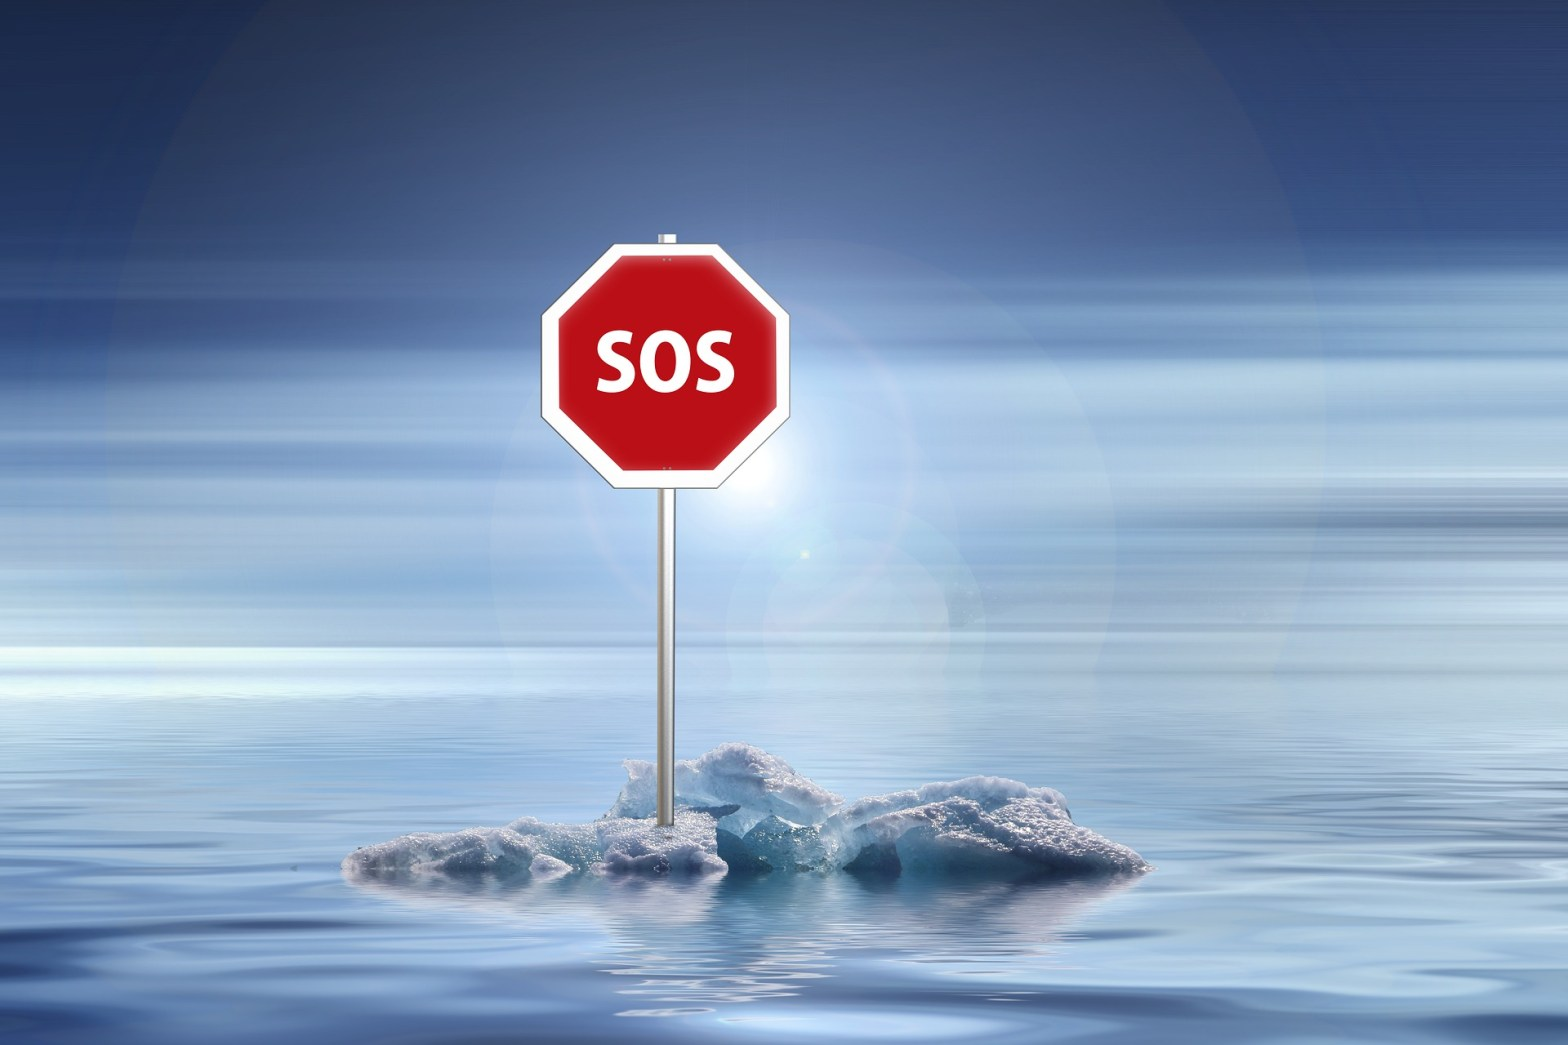 SOS sign on some ice in the middle of the ocean